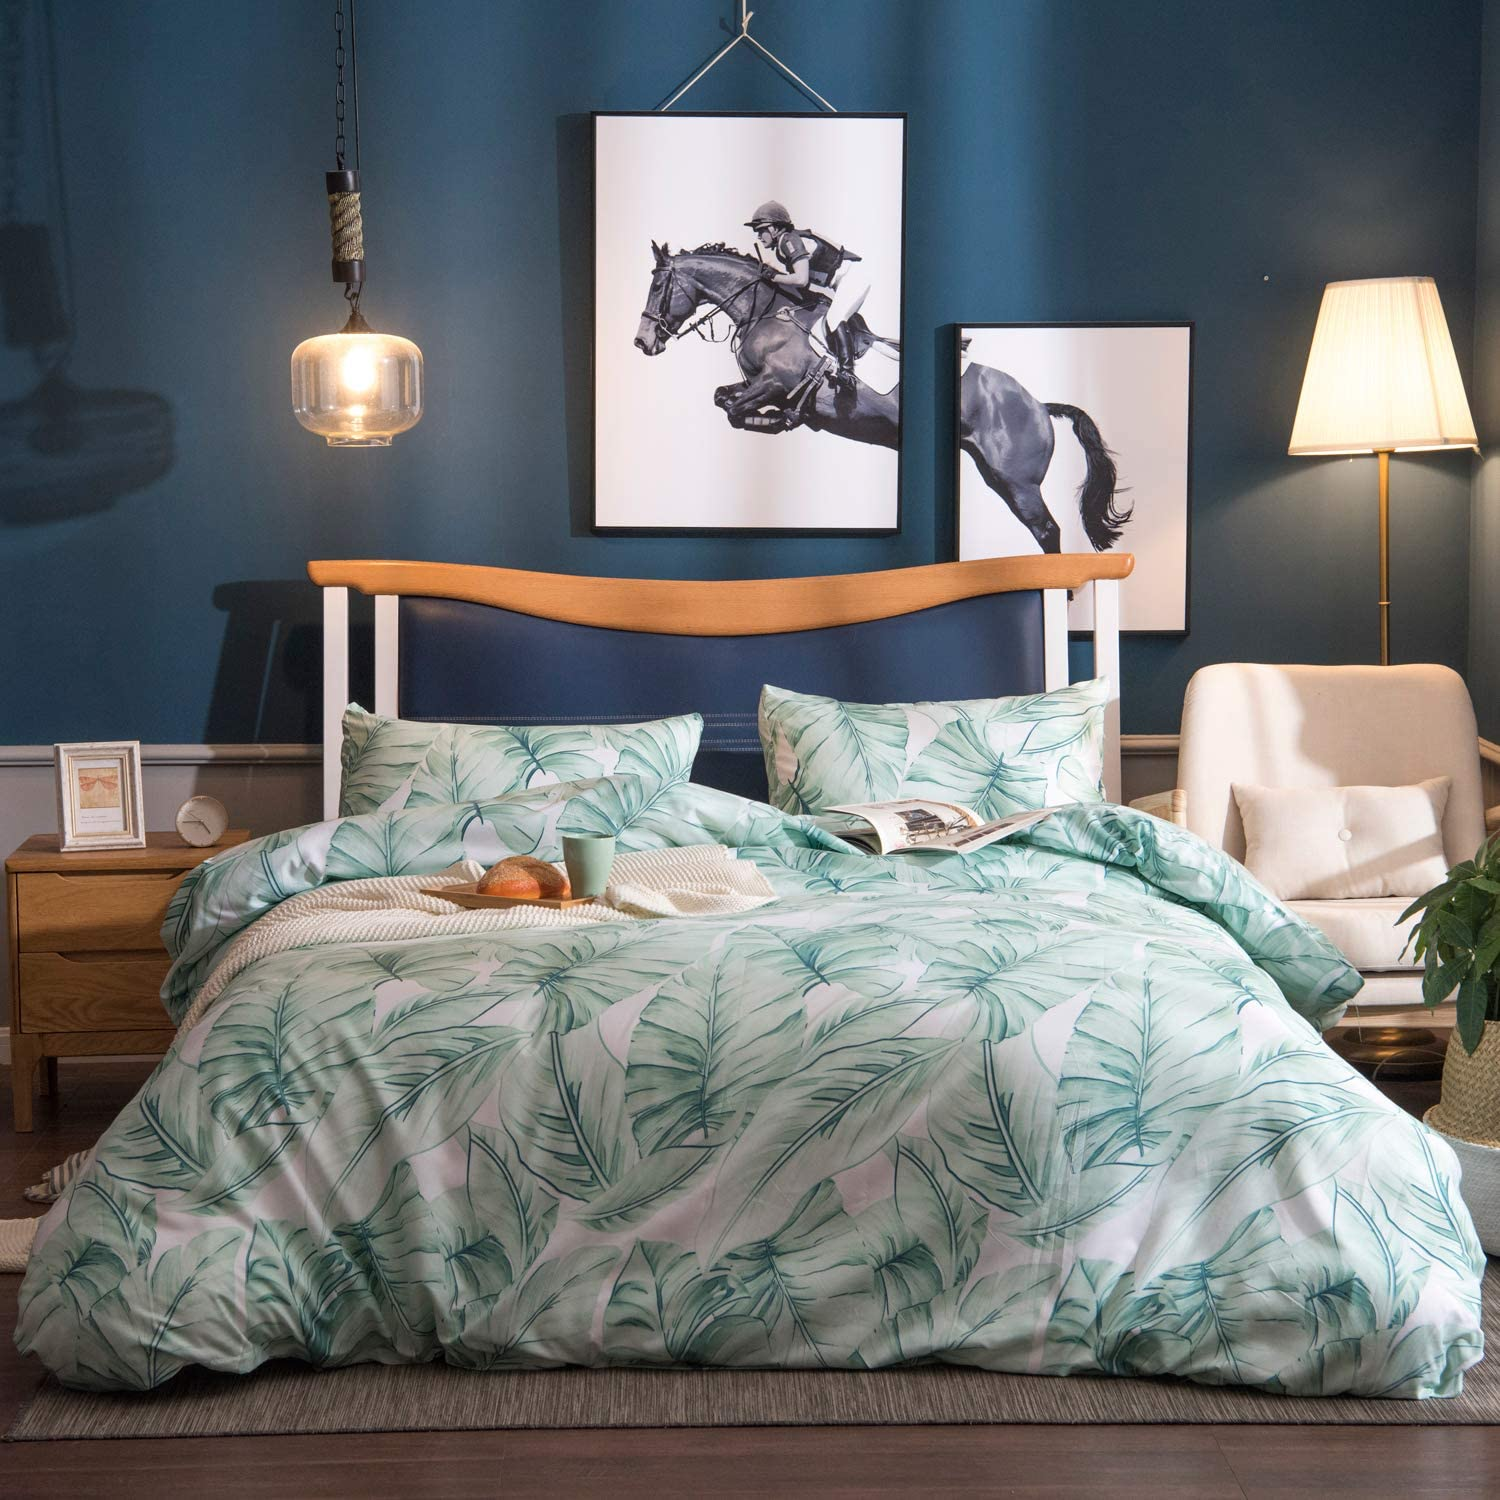 OSVINO Simple Style 100% Microfiber Botanical Pattern Bedding Quilt Comforter Duvet Cover Set with Pillow Shams, Green, Queen